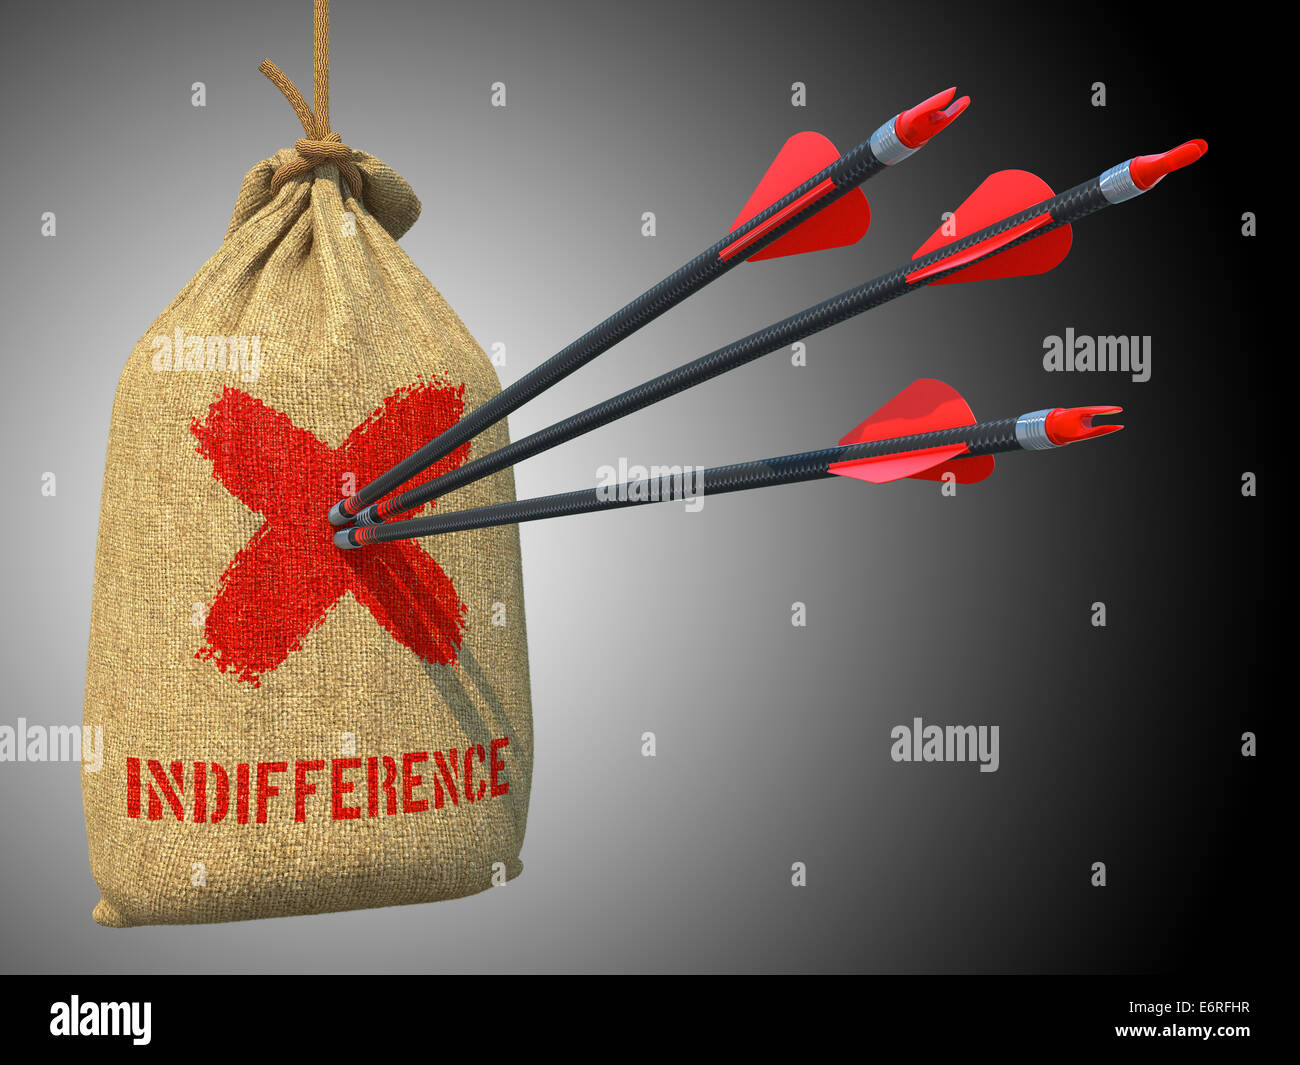 Indifference - Arrows Hit in Red Target. - Stock Image